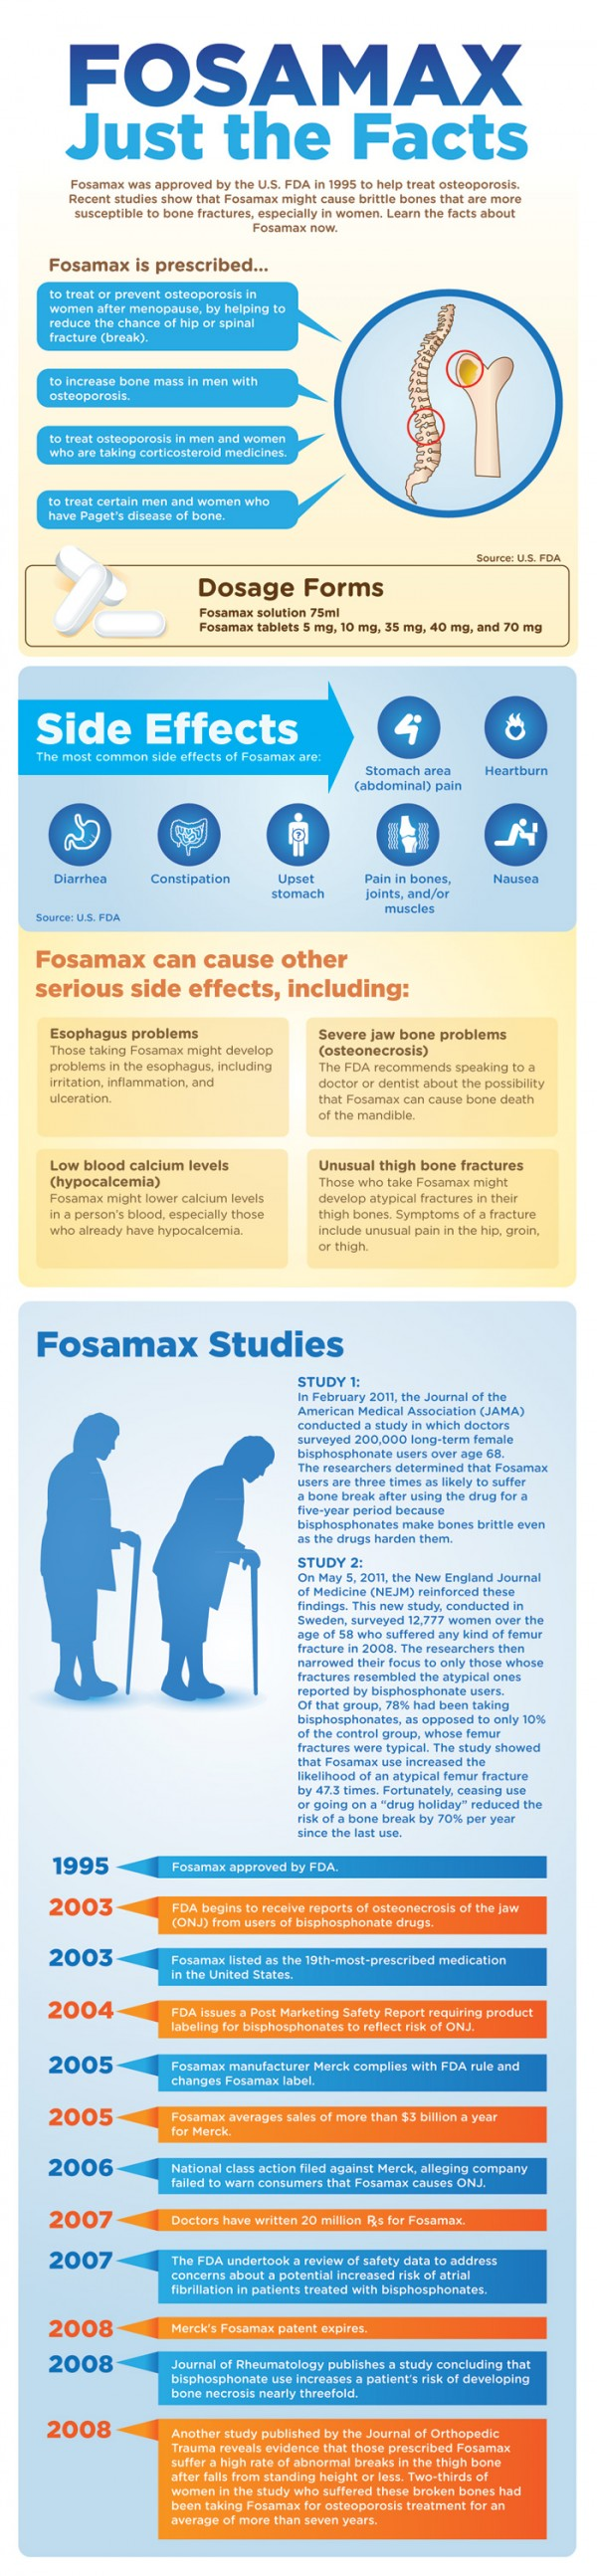 fosamax-information